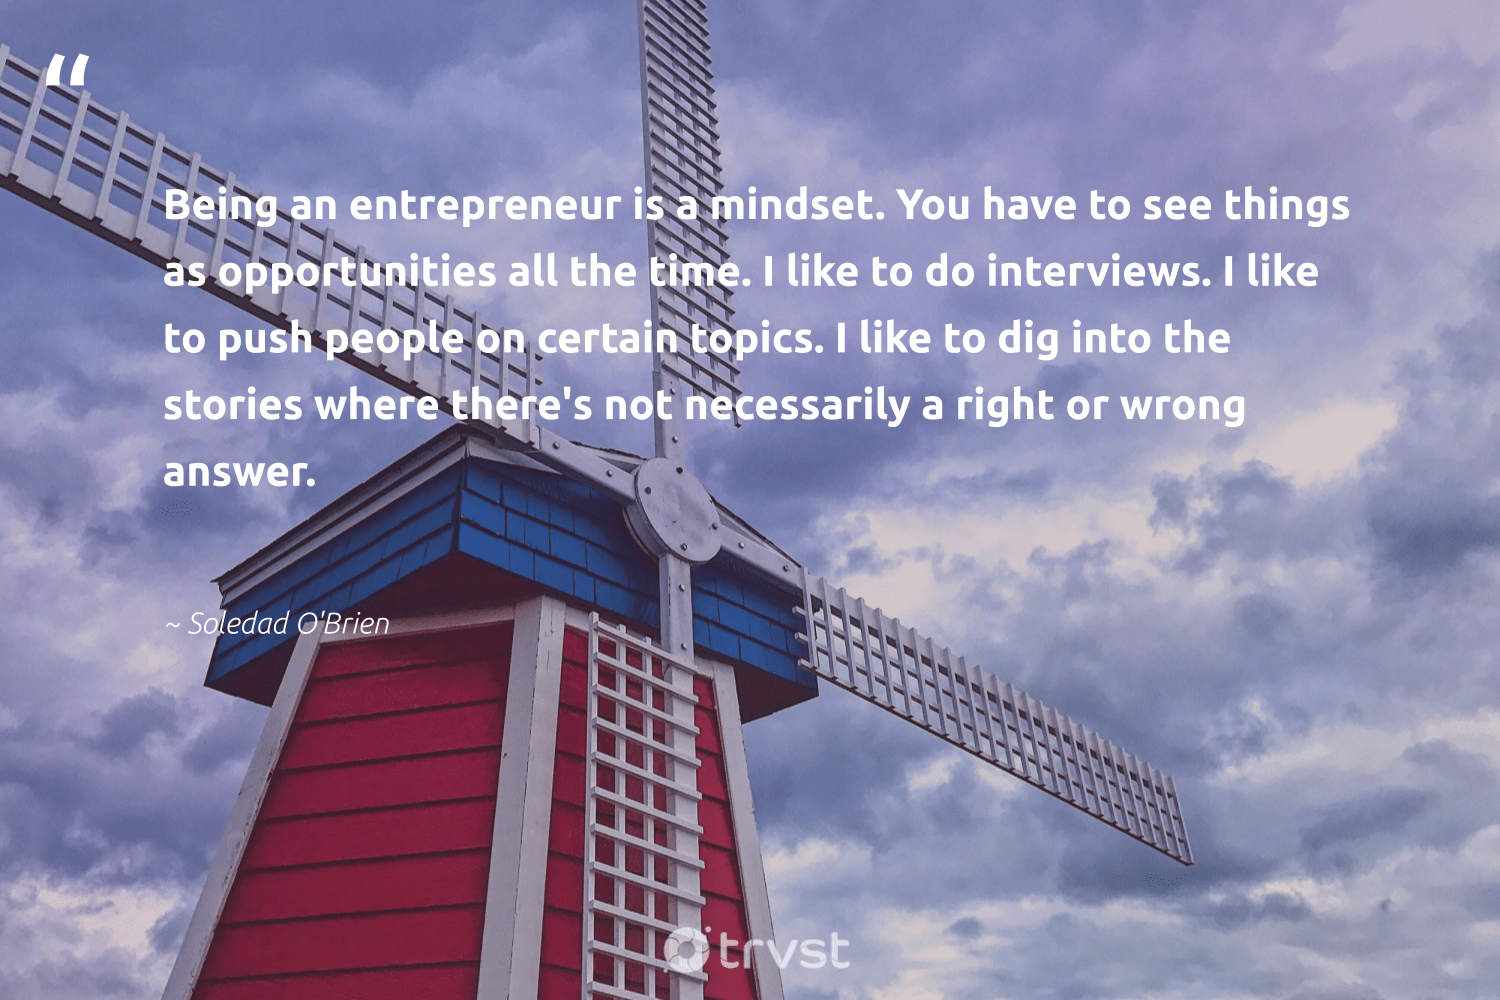 """""""Being an entrepreneur is a mindset. You have to see things as opportunities all the time. I like to do interviews. I like to push people on certain topics. I like to dig into the stories where there's not necessarily a right or wrong answer.""""  - Soledad O'Brien #trvst #quotes #mindset #entrepreneur #entrepreneurmindset #betterplanet #togetherwecan #dosomething #meditation #makeadifference #nevergiveup #gogreen"""